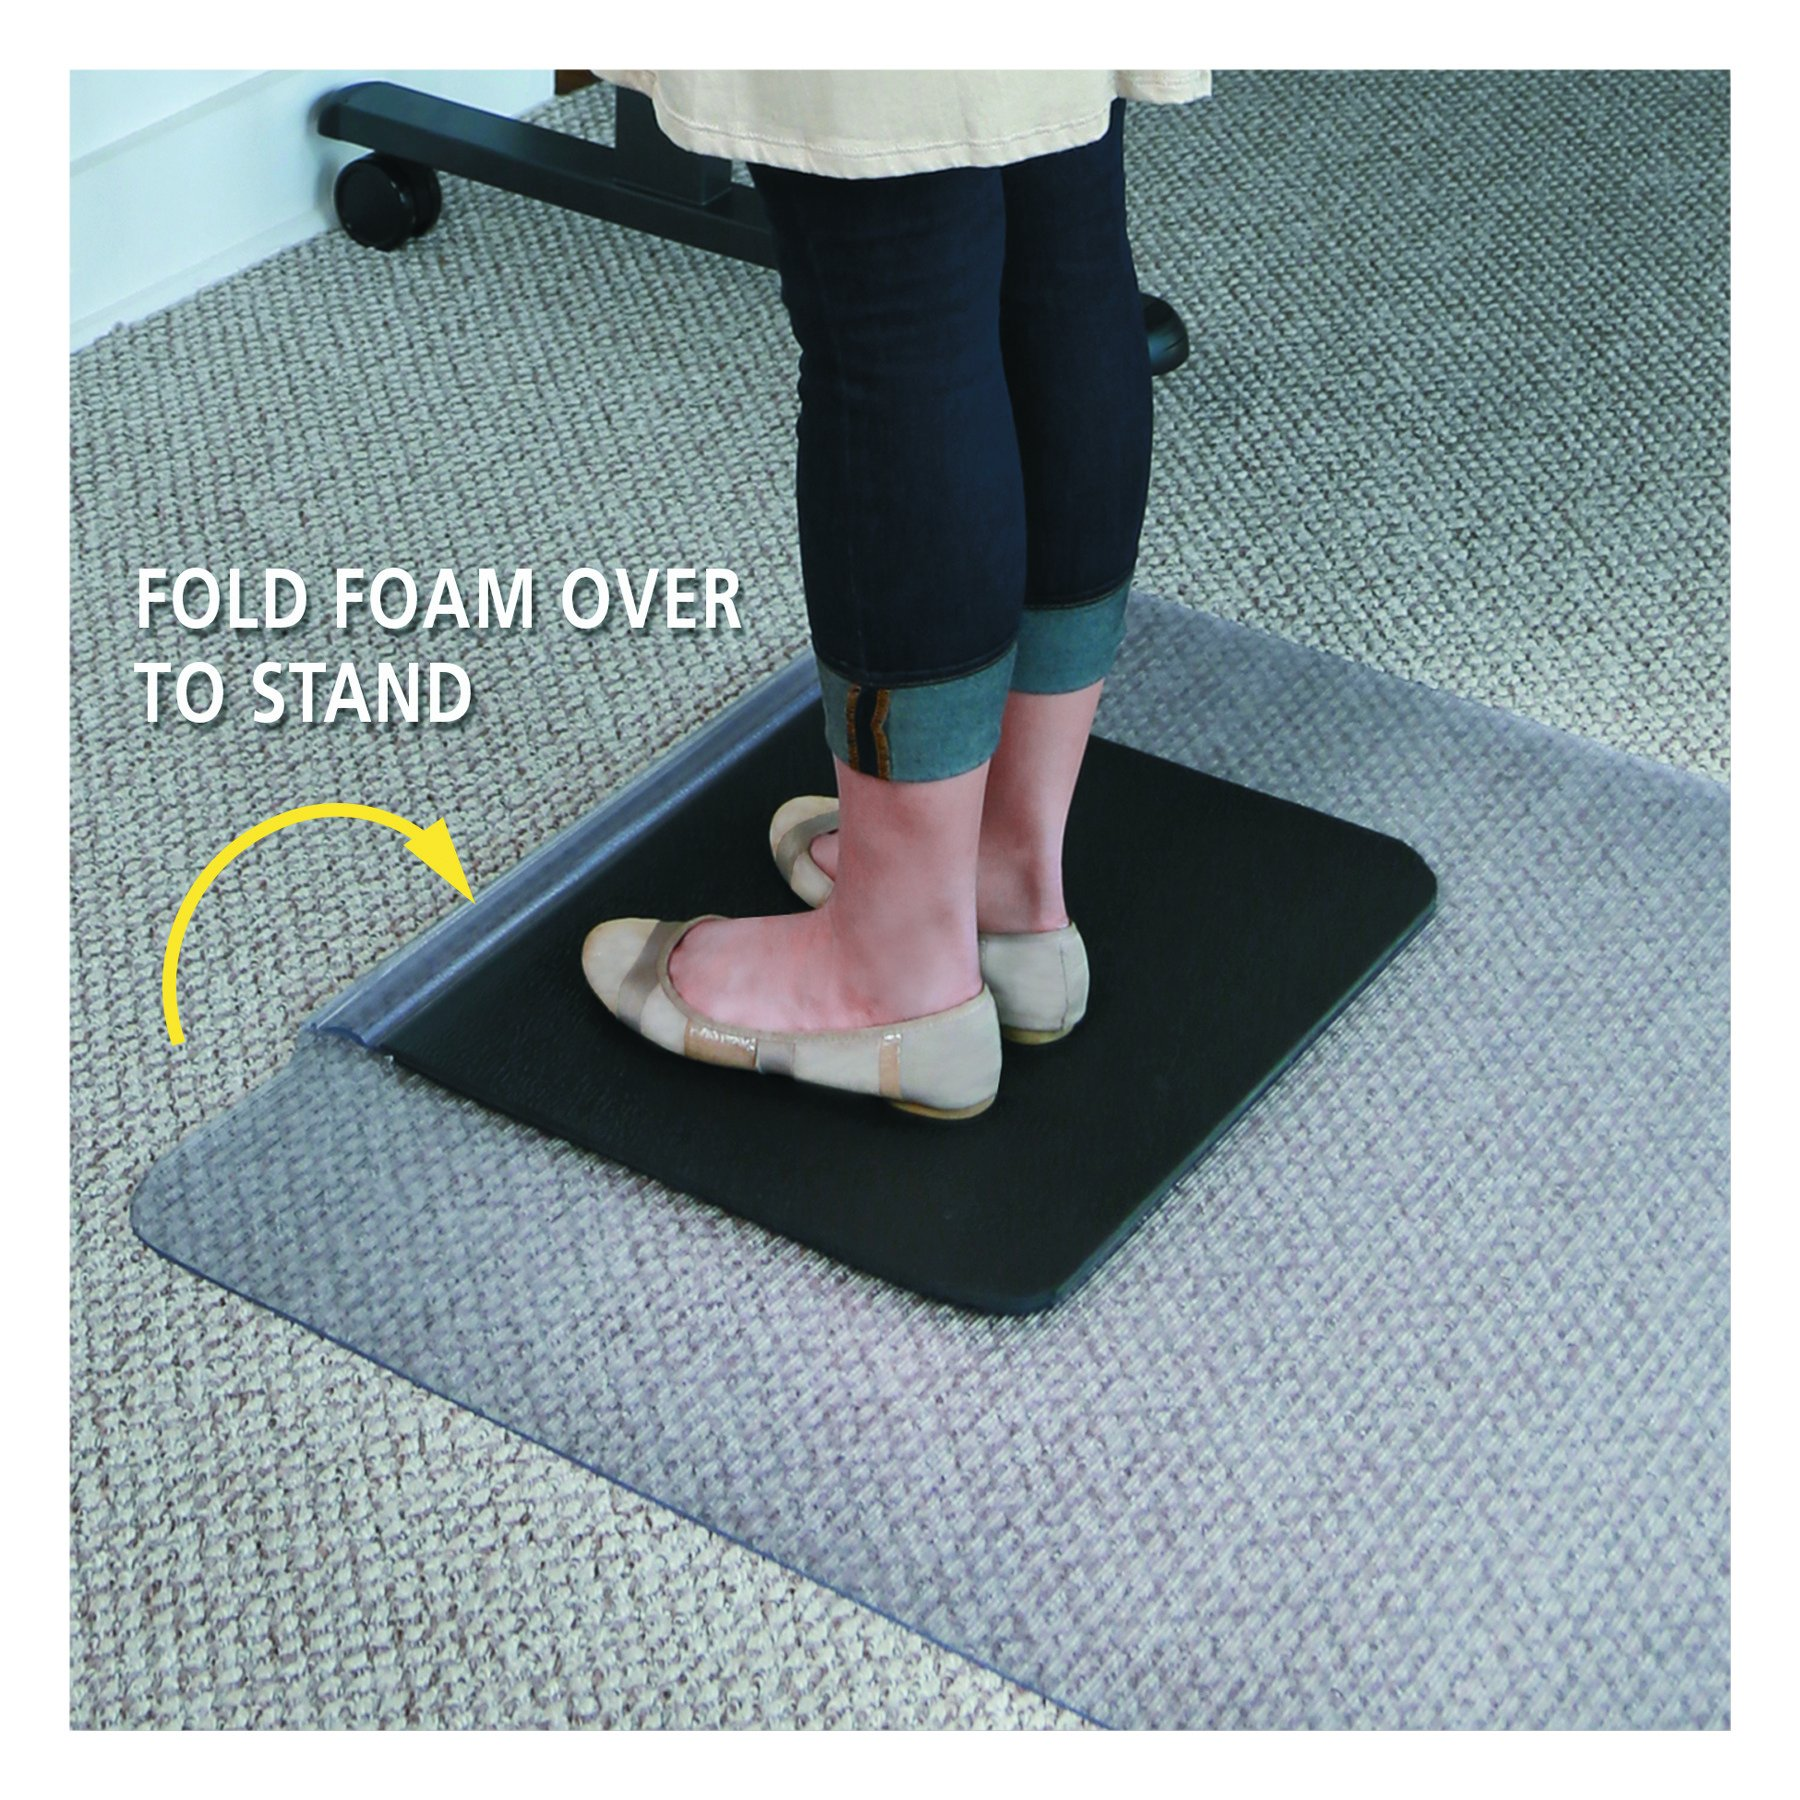 ES Robbins Sit or Stand Mat for Carpet or Hard Floors with Lip, 36'' x 53'', Clear/Black by ES Robbins